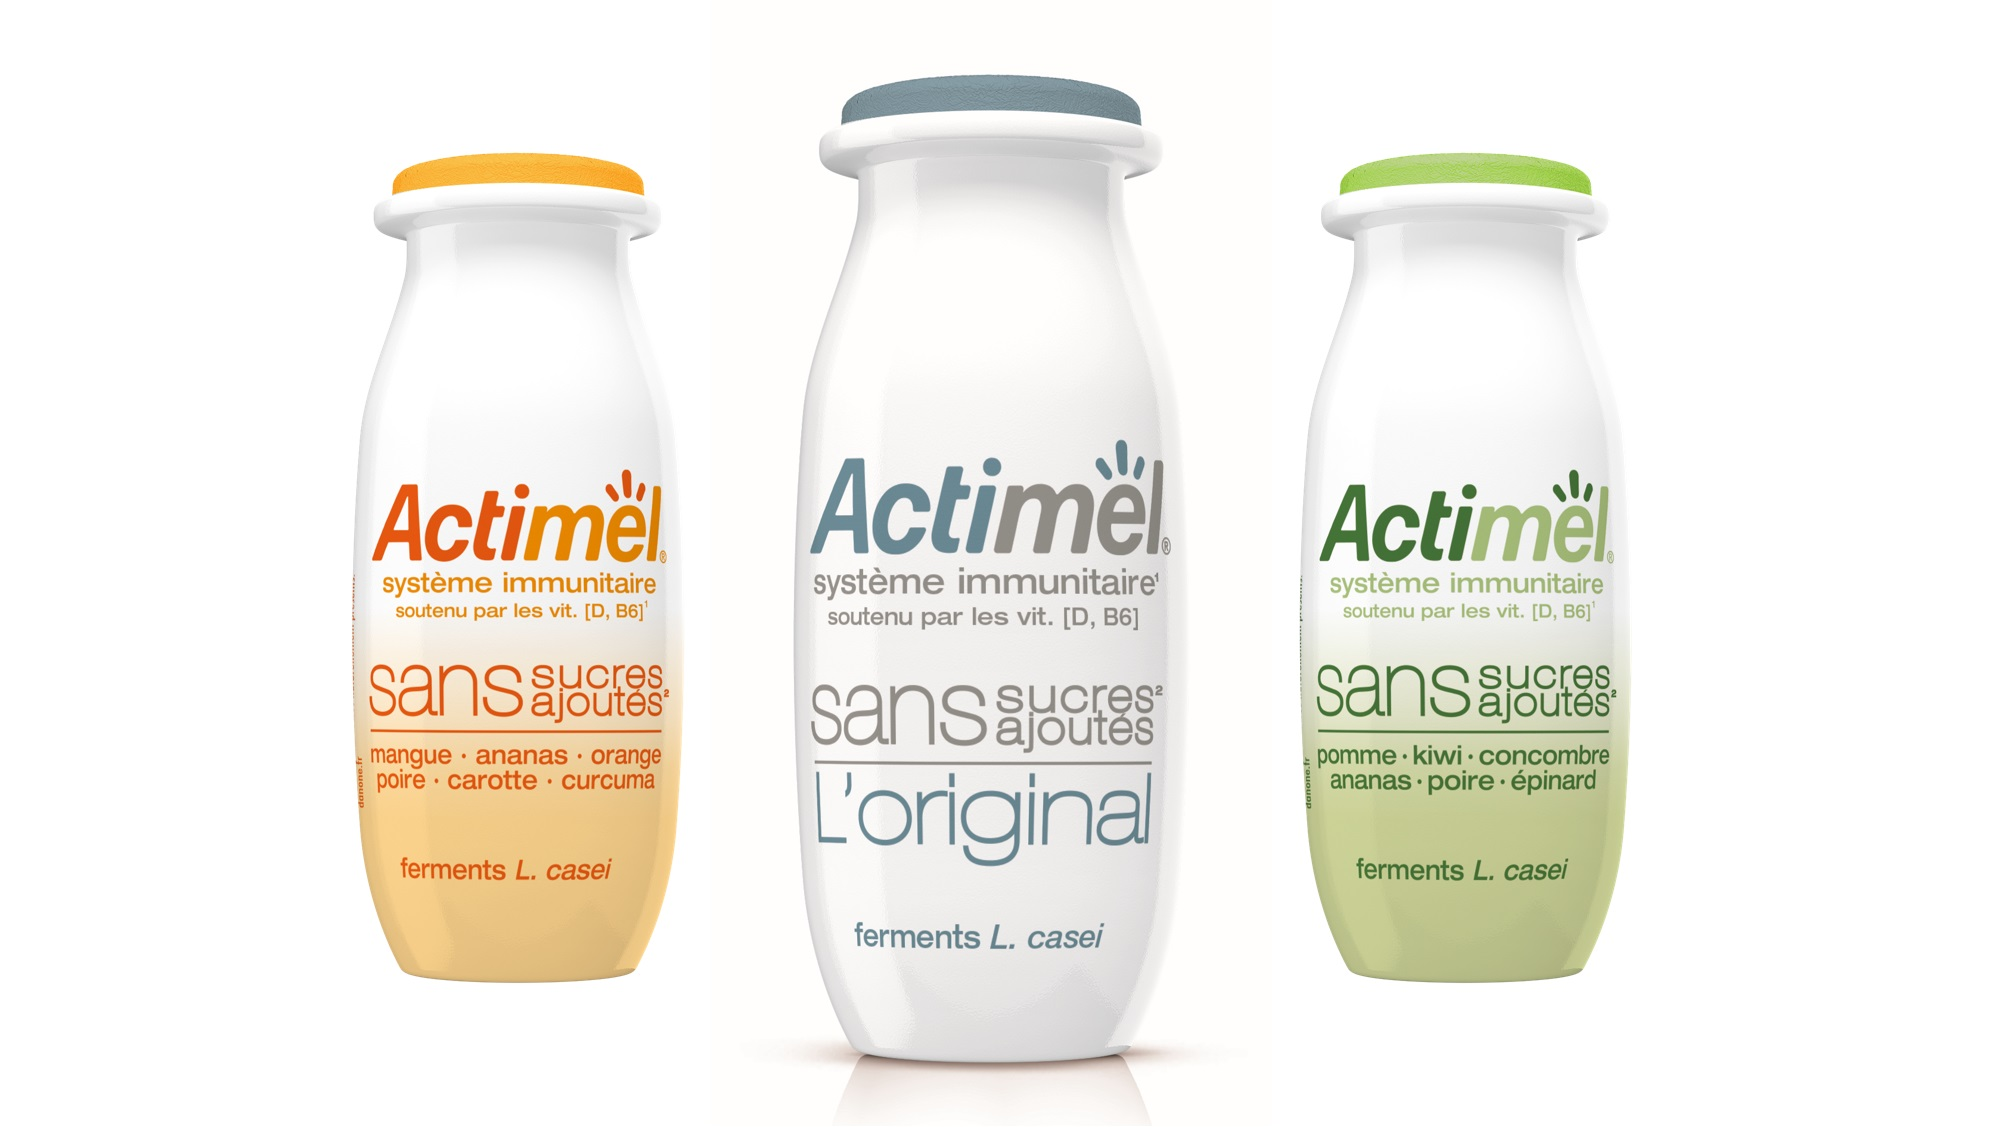 The new Actimel with no added sugars!